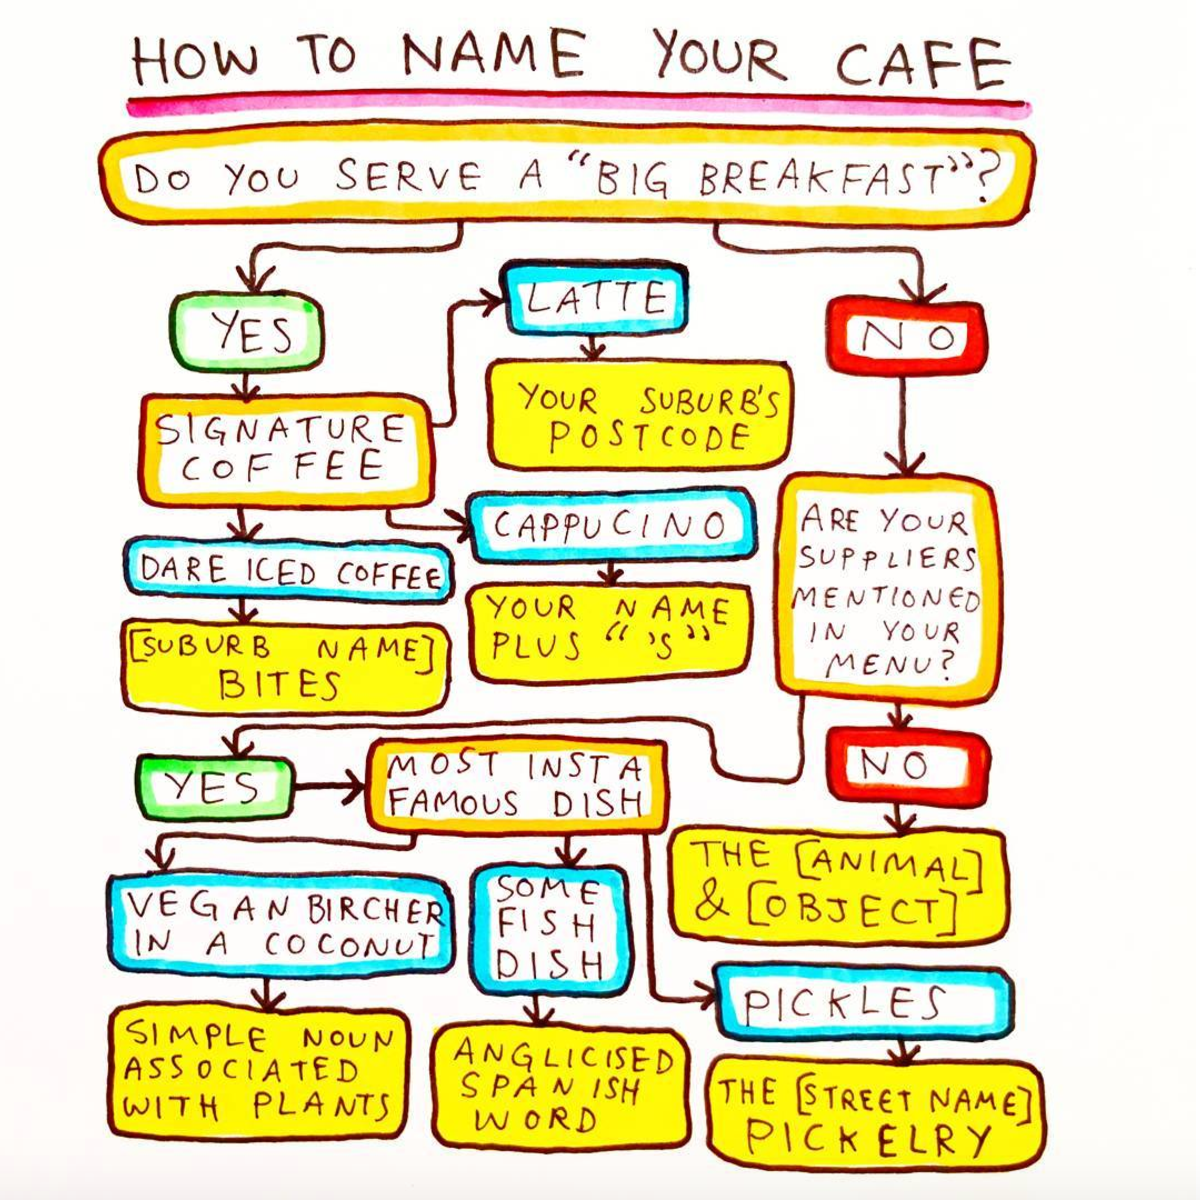 name your cafe.png